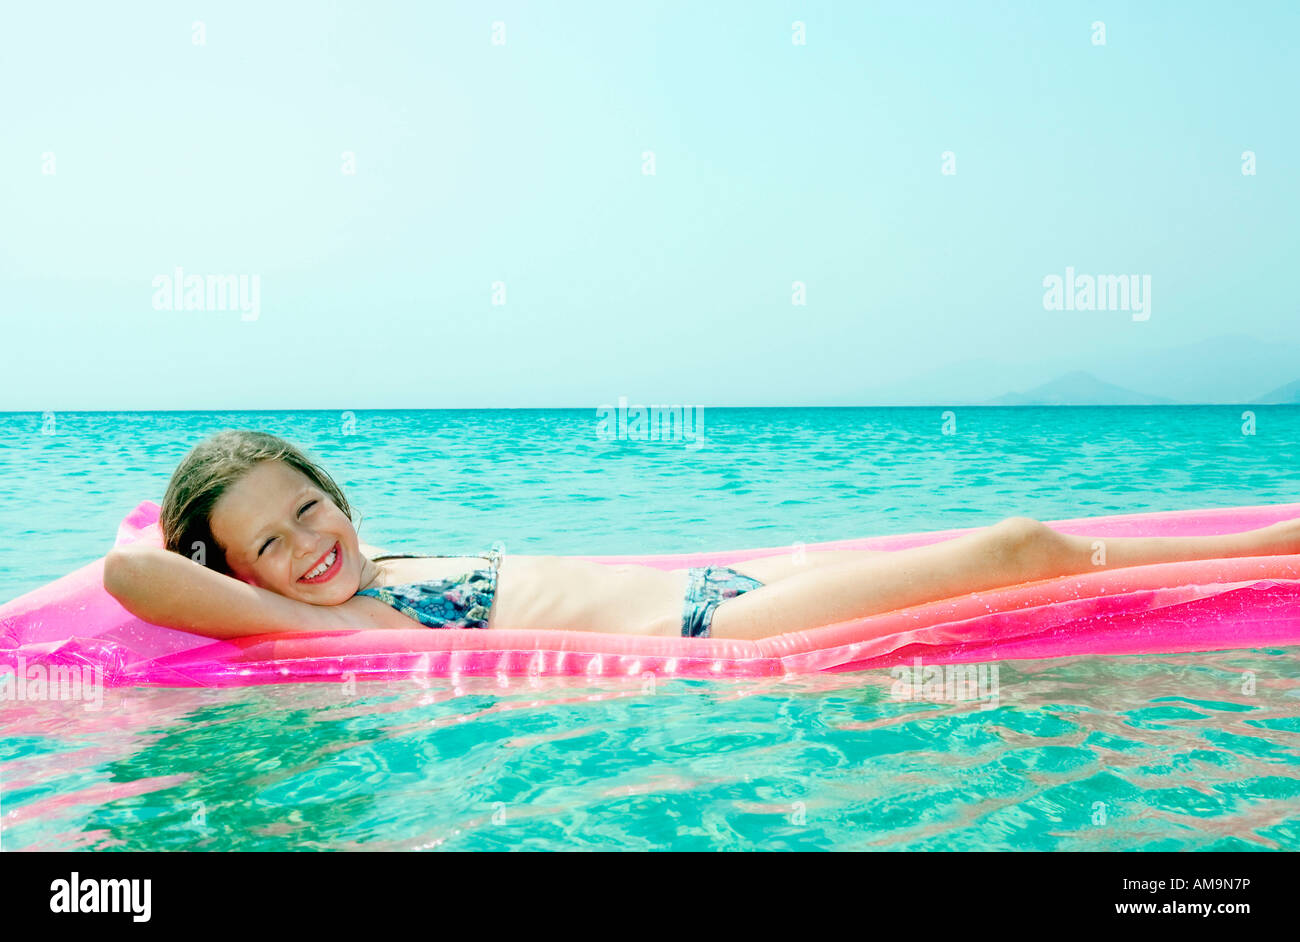 Young girl lying on inflatable raft in the water smiling. Stock Photo